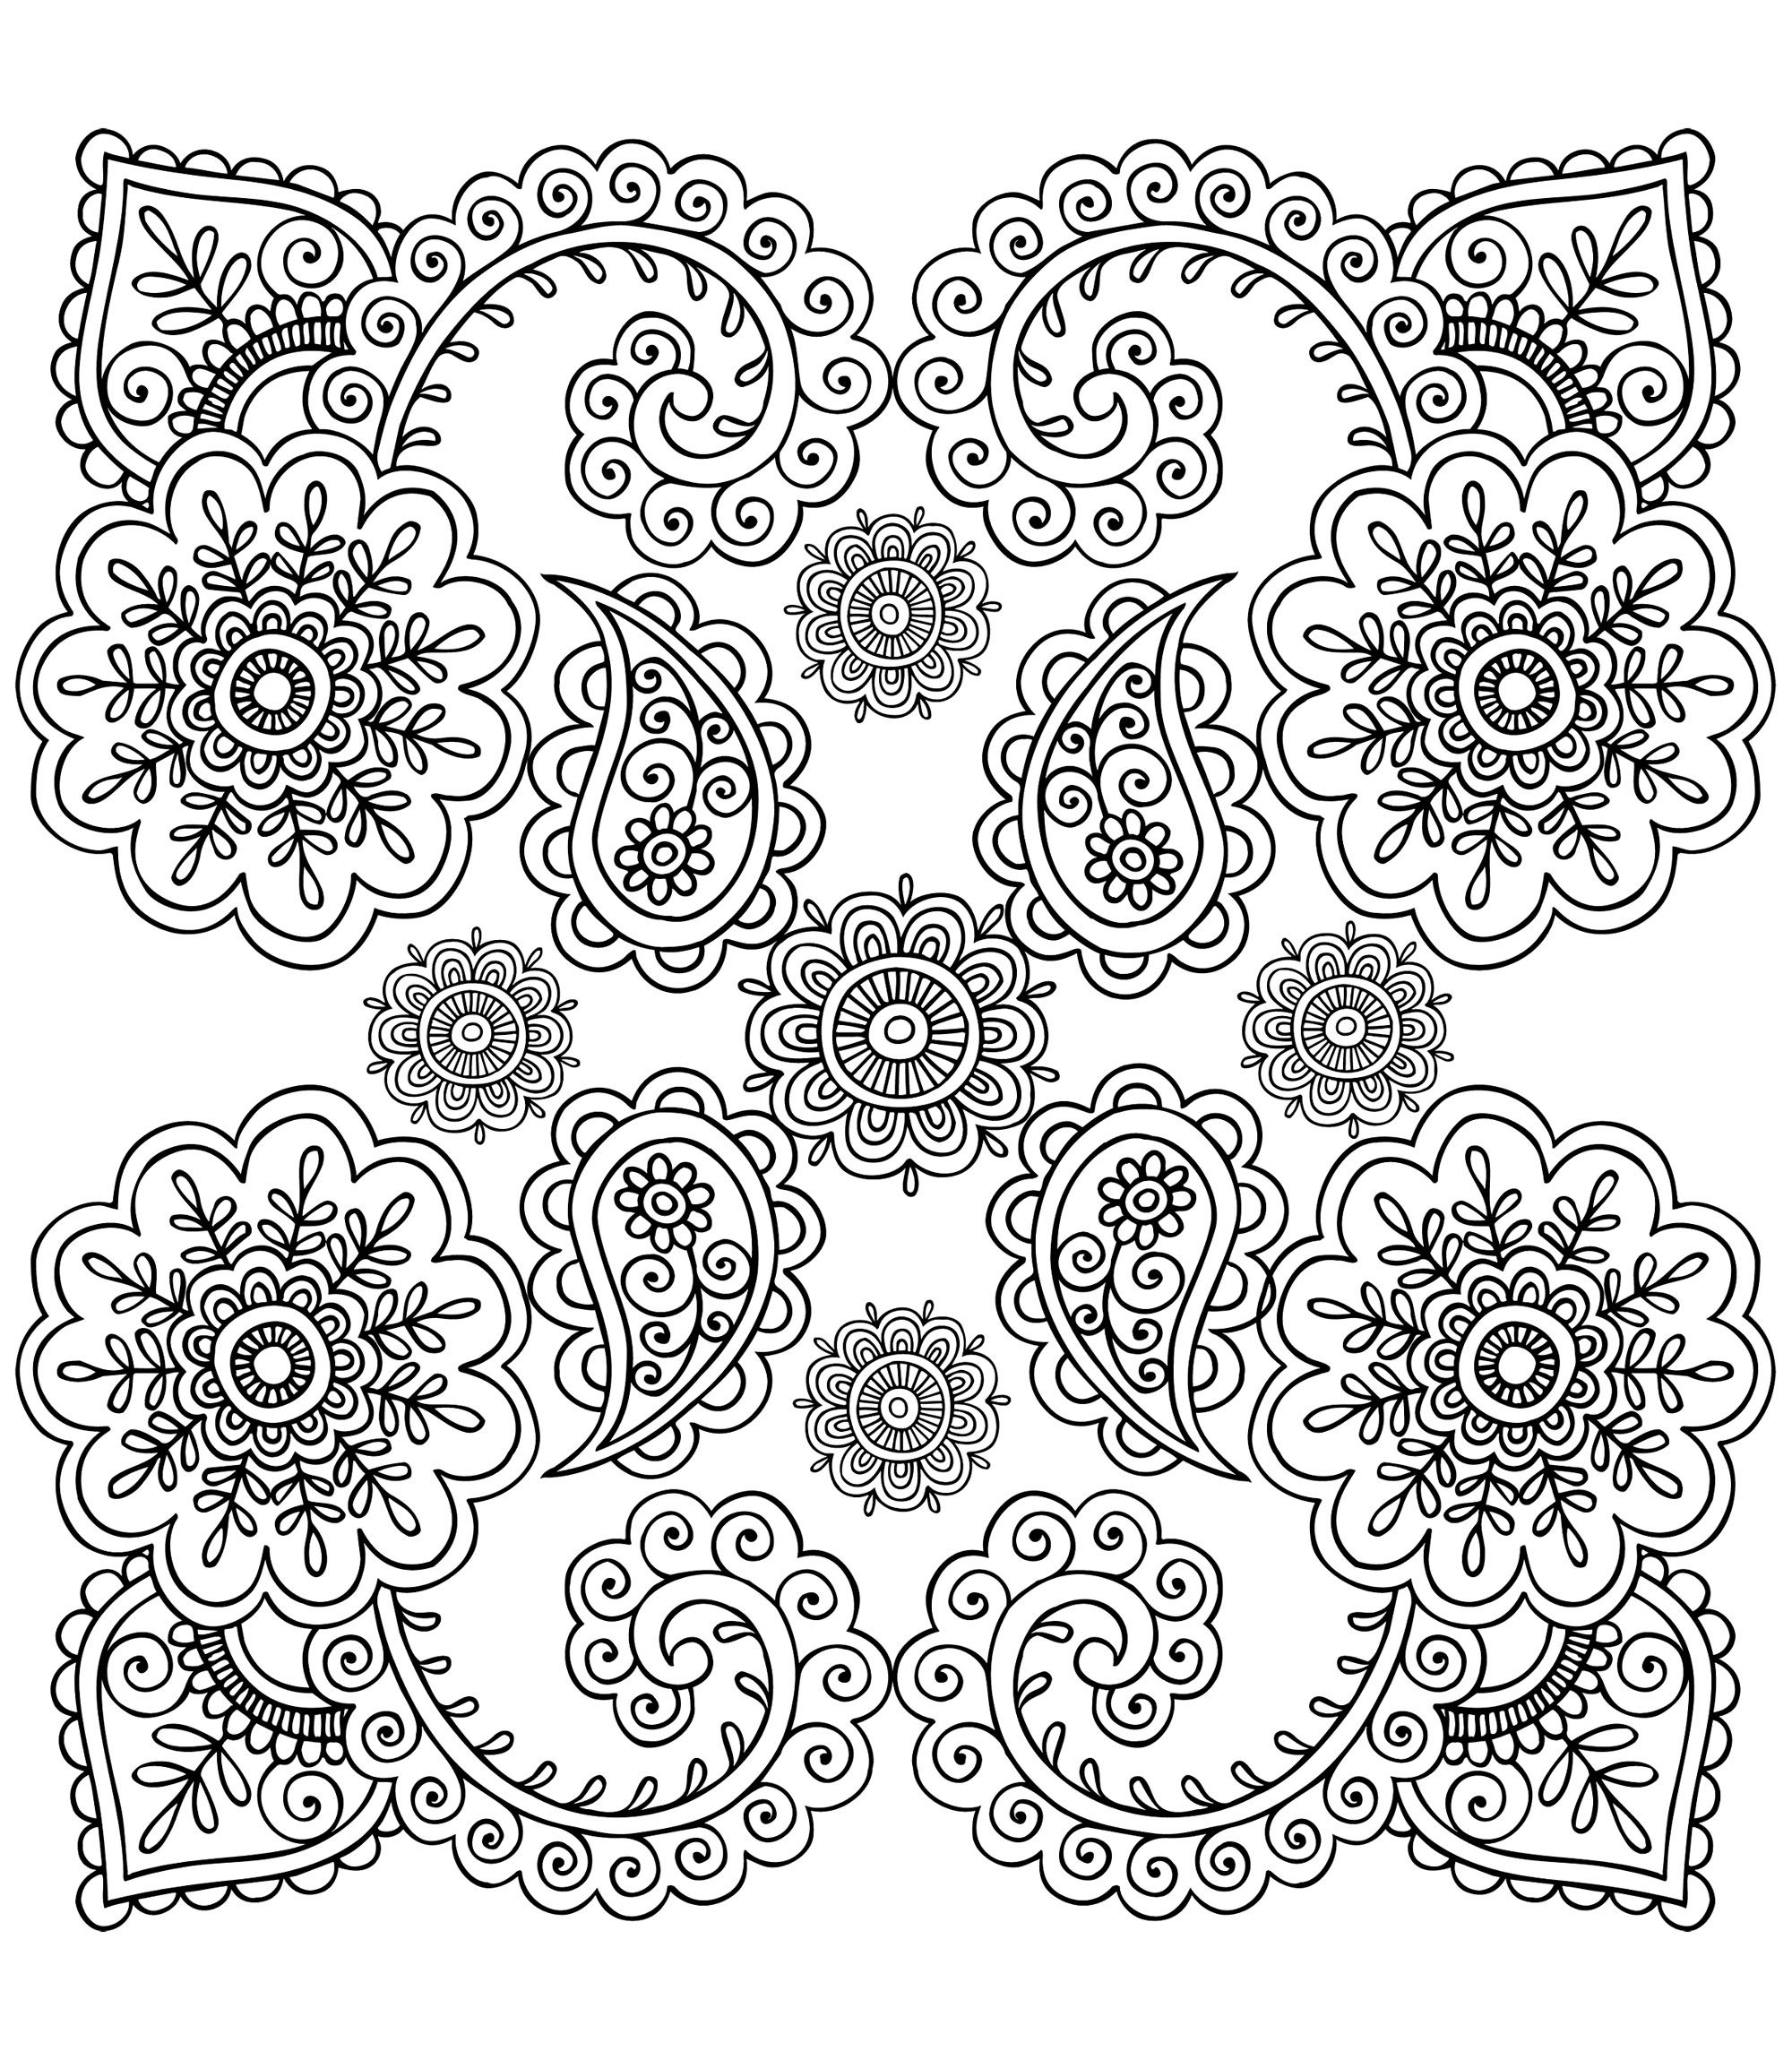 Printable coloring pages for adults flowers - Free Coloring Page Coloriage Anti Stress Fleurs